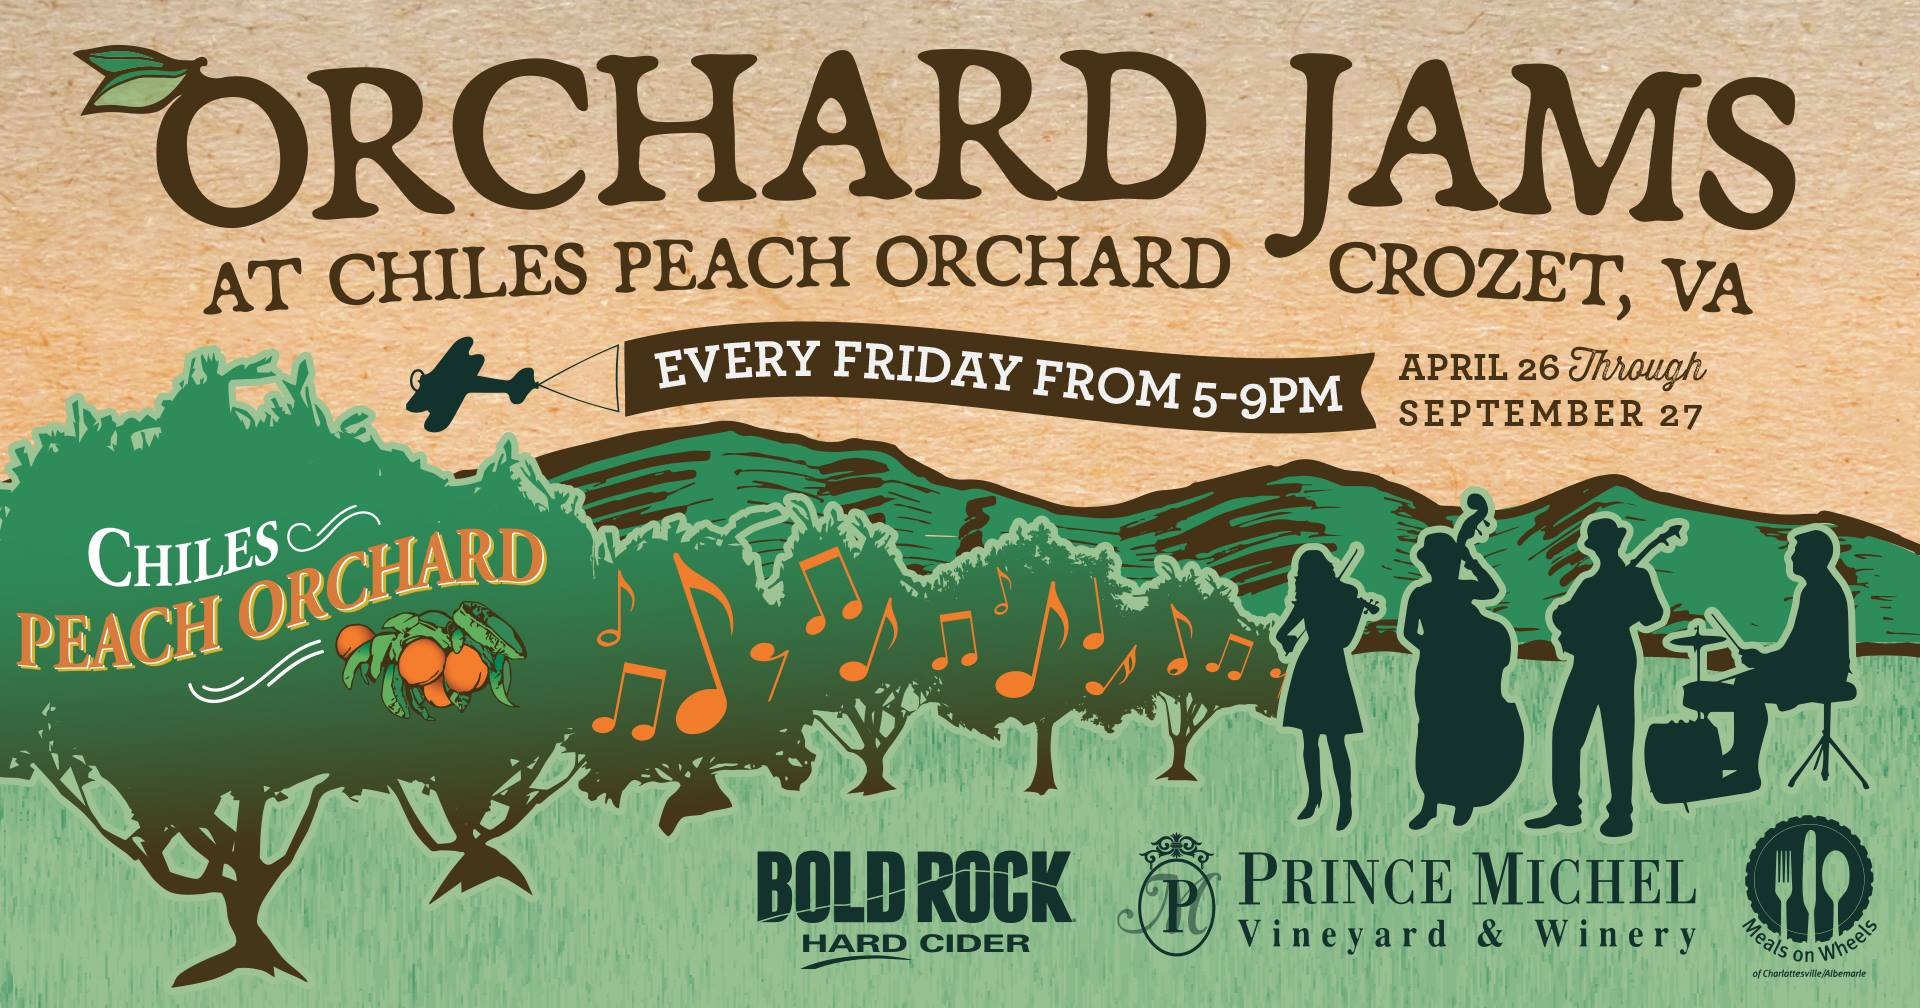 Orchard Jams, free music at Chiles Peach Orchard